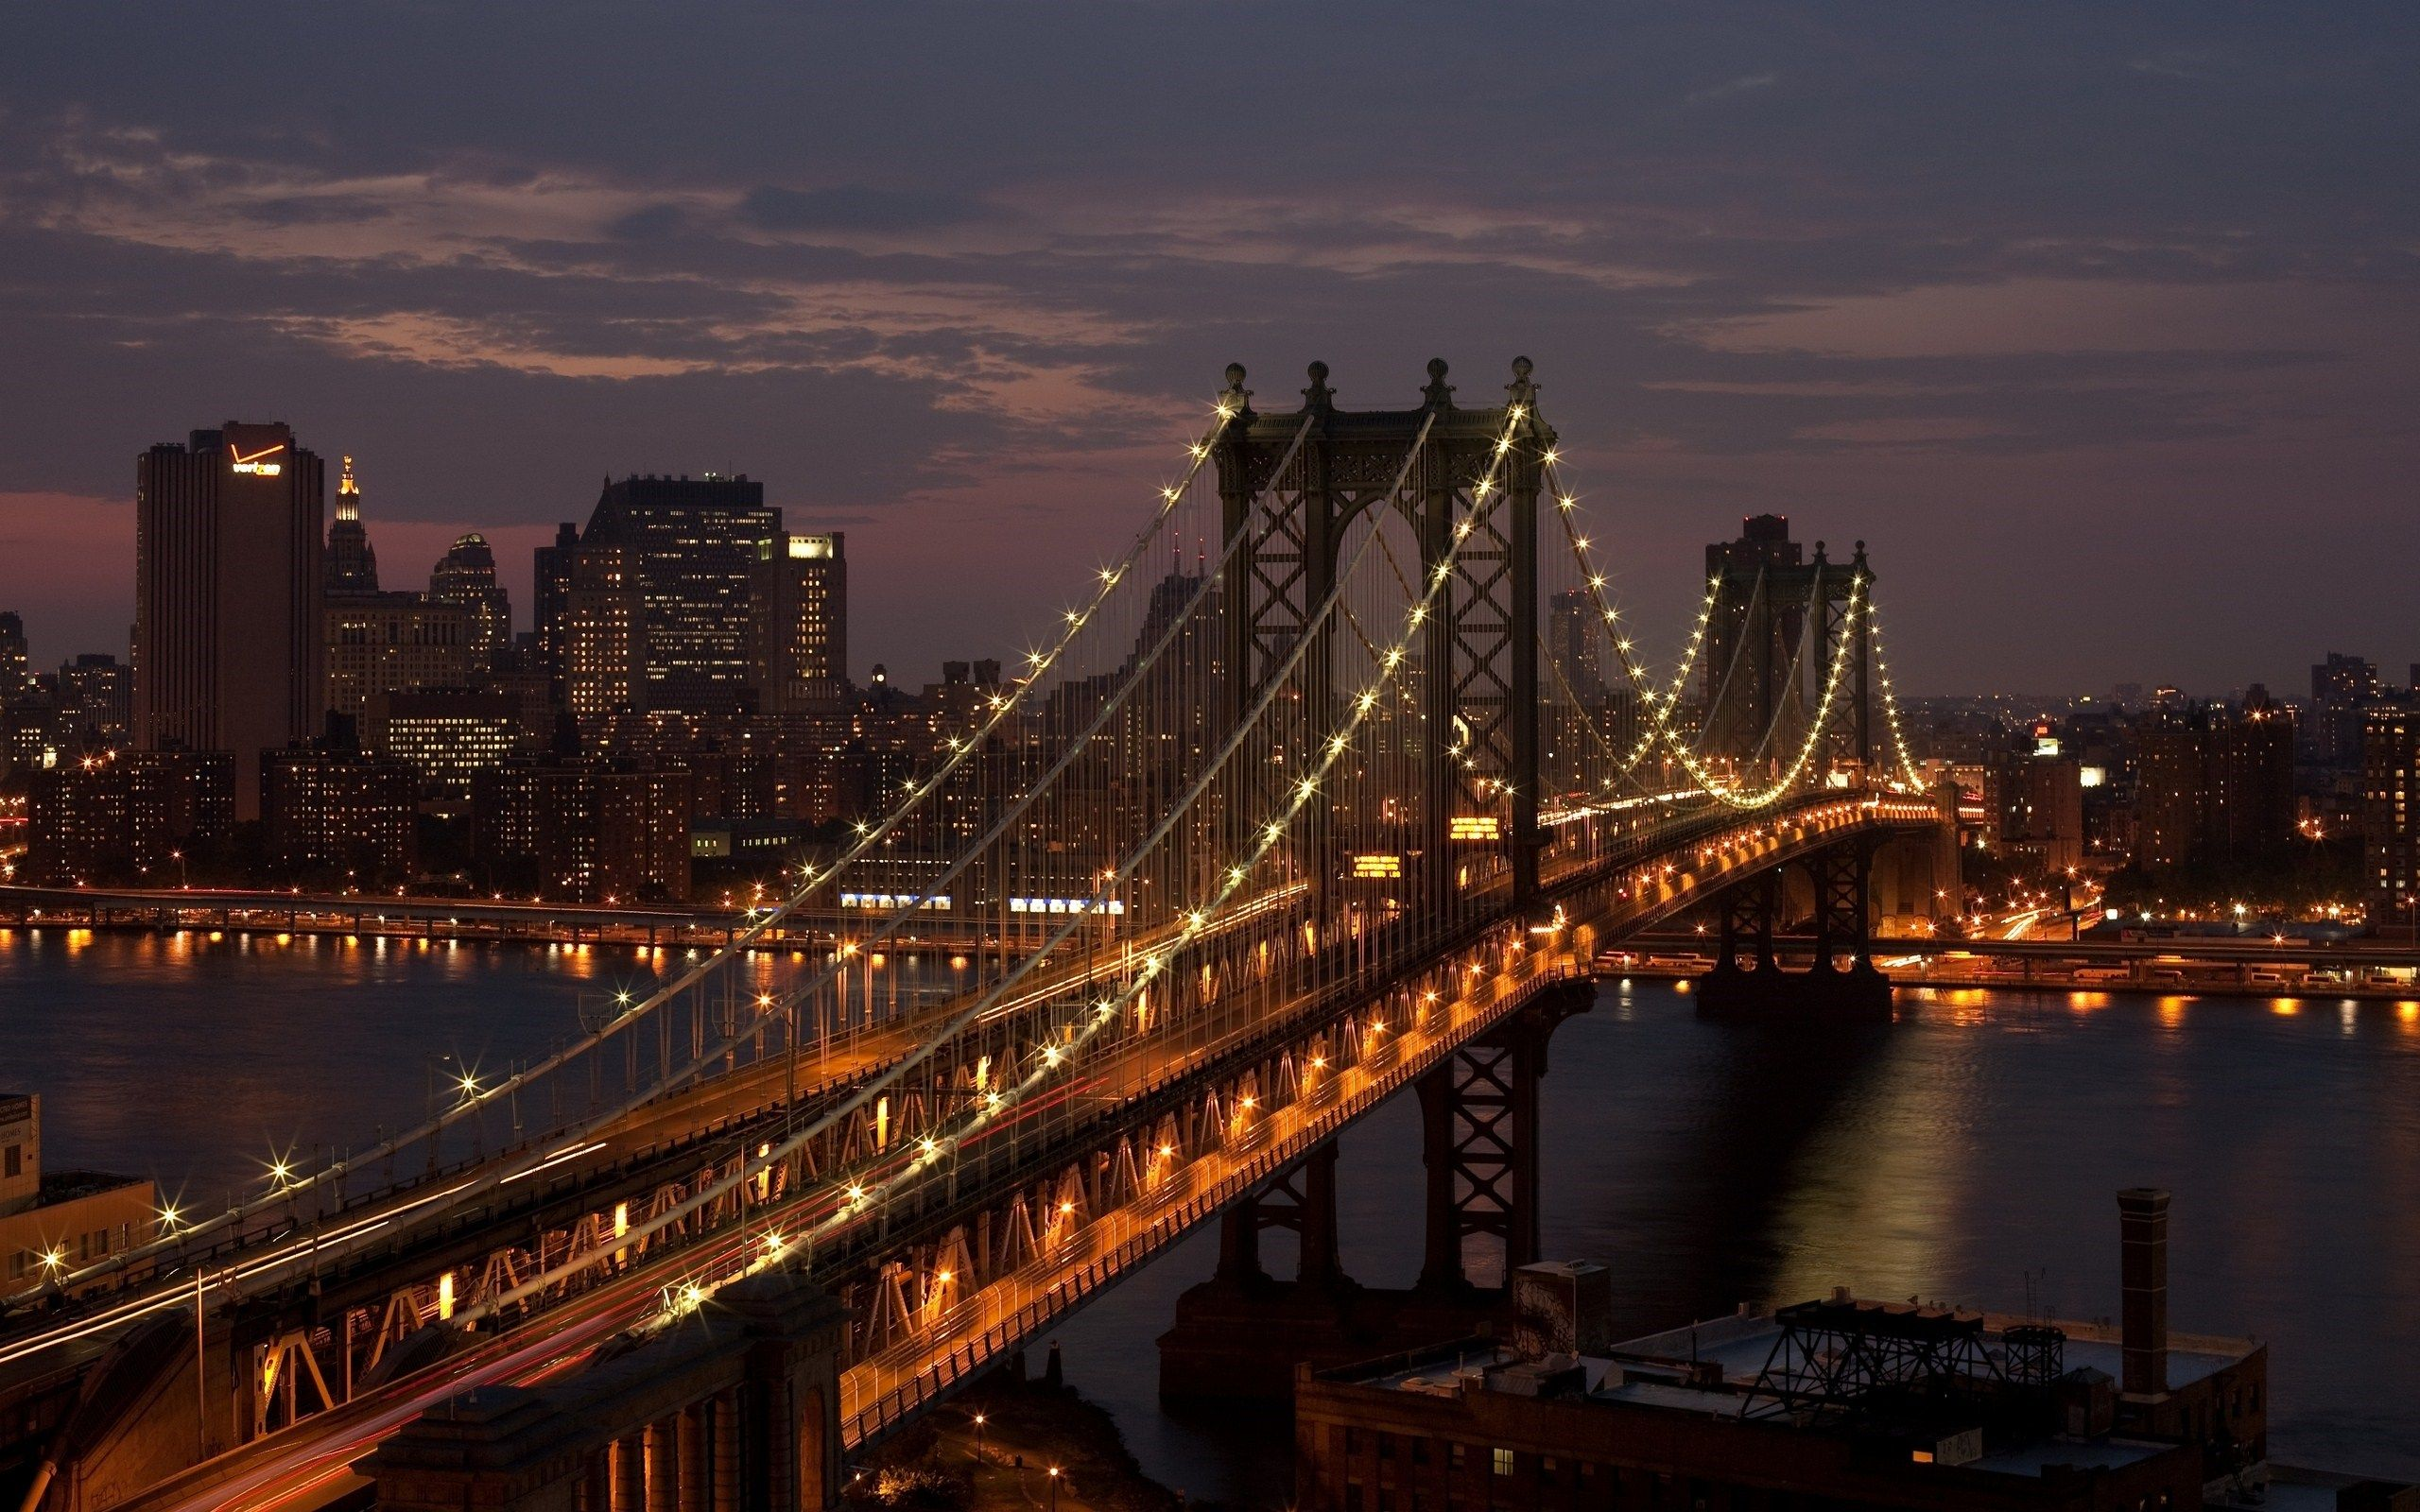 Hudson River Manhattan Bridge New York City Usa Night Hd Wallpaper New York Bridge Brooklyn Bridge New York Manhattan Bridge